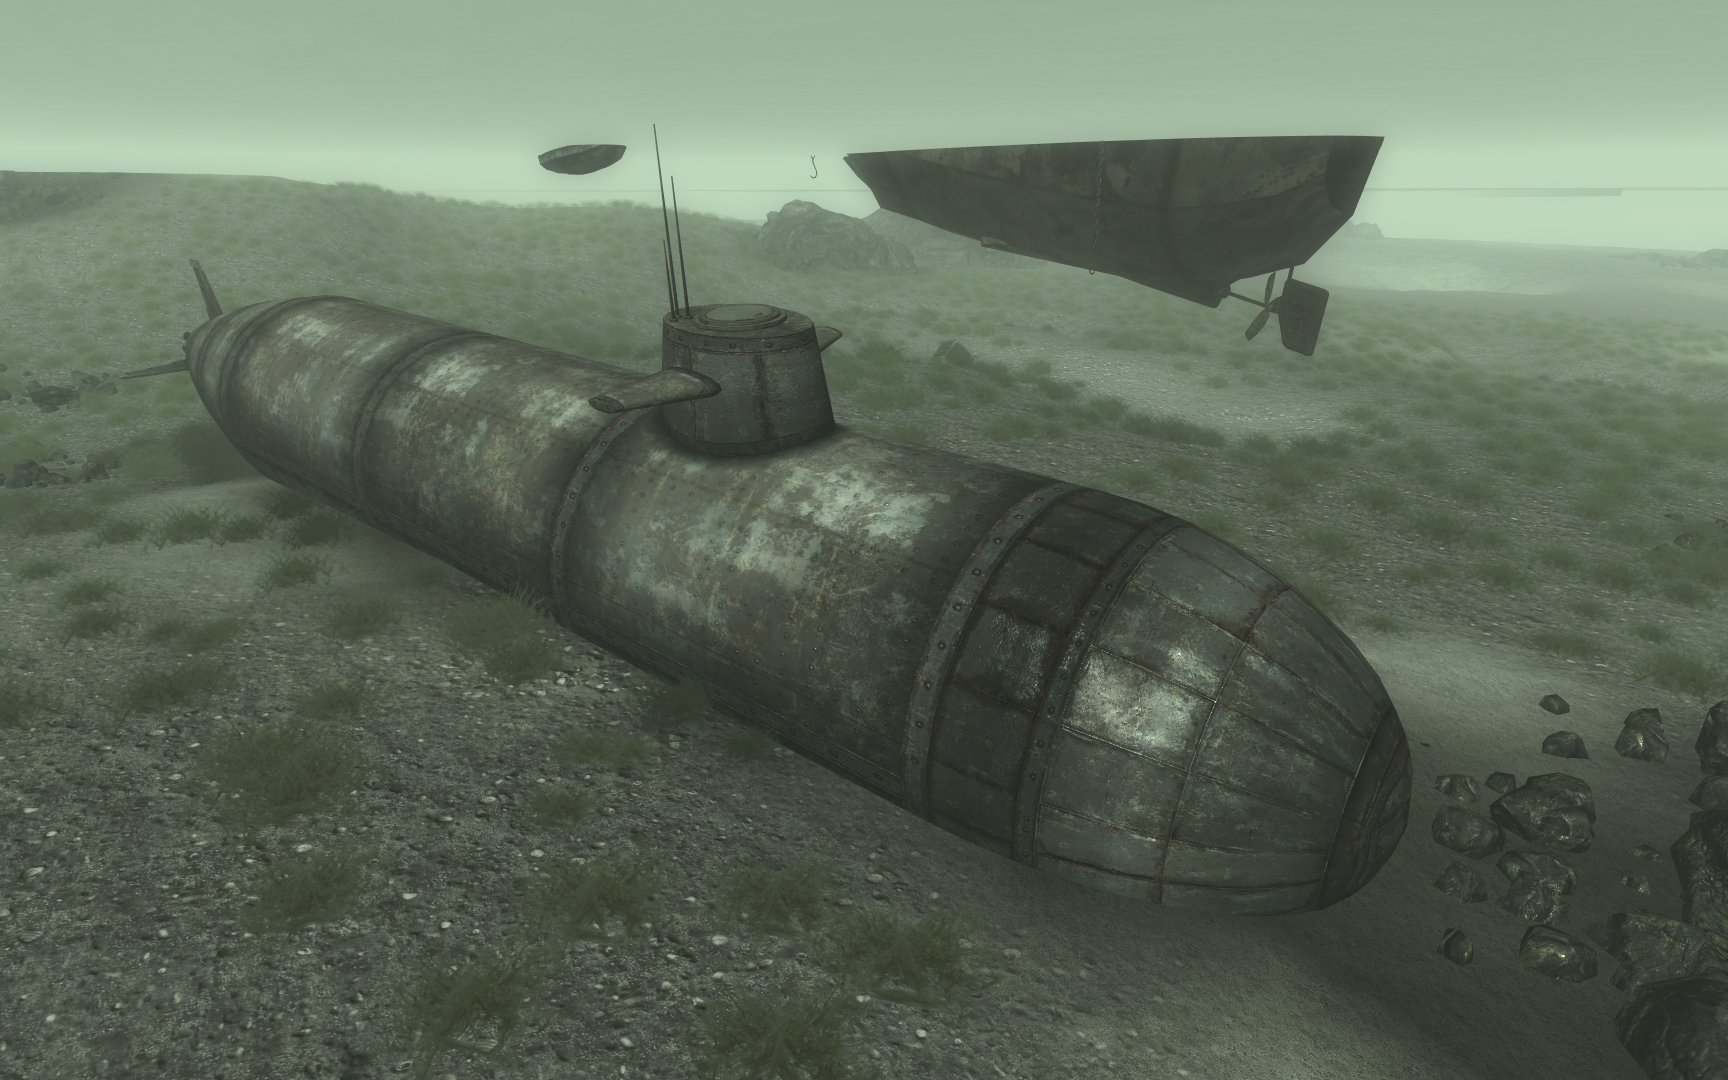 SSN-37-1A | Fallout Wiki | FANDOM powered by Wikia